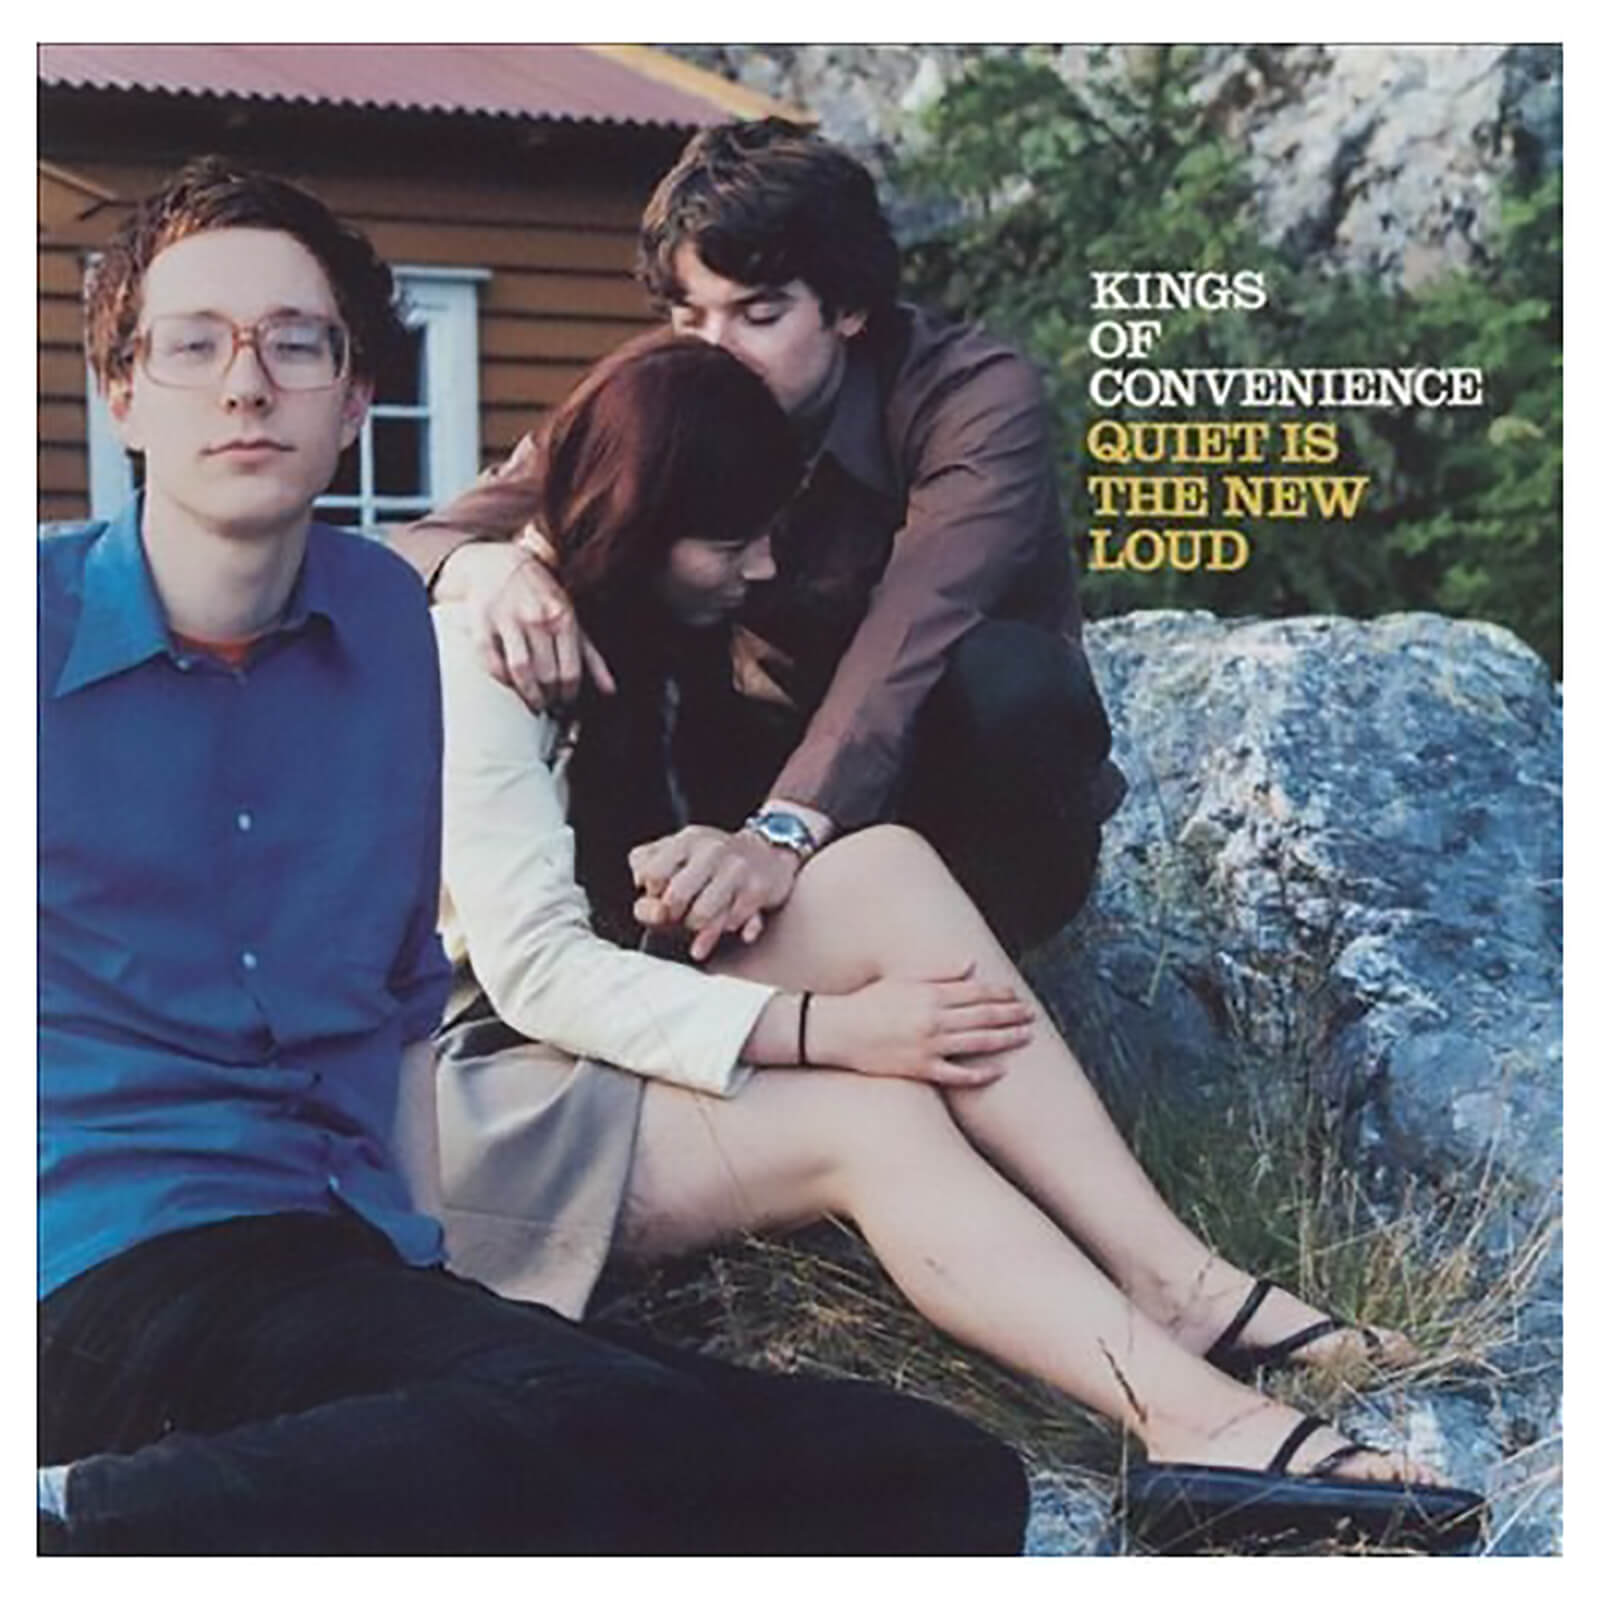 Kings Of Convenience - Quiet Is The New Loud - Vinyl